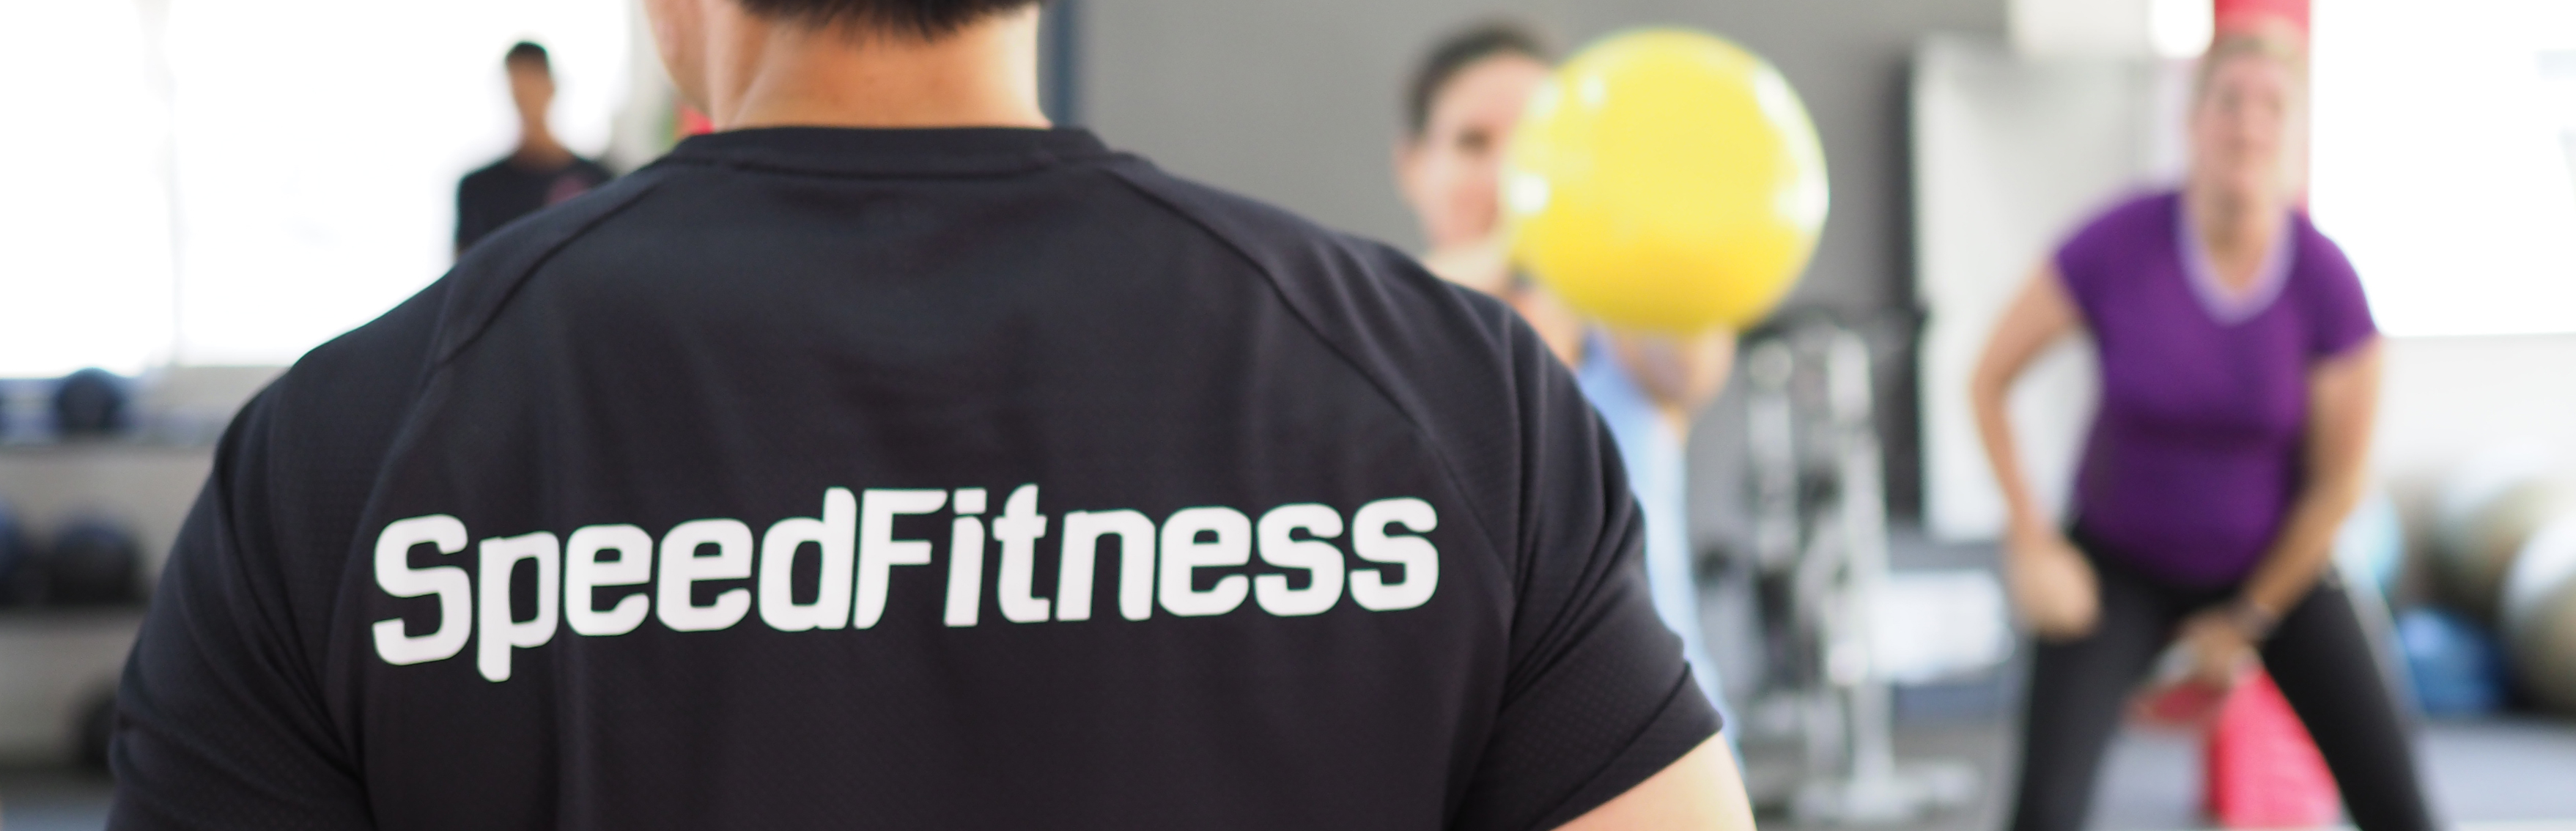 Trainer with Speed Fitness logo on shirt